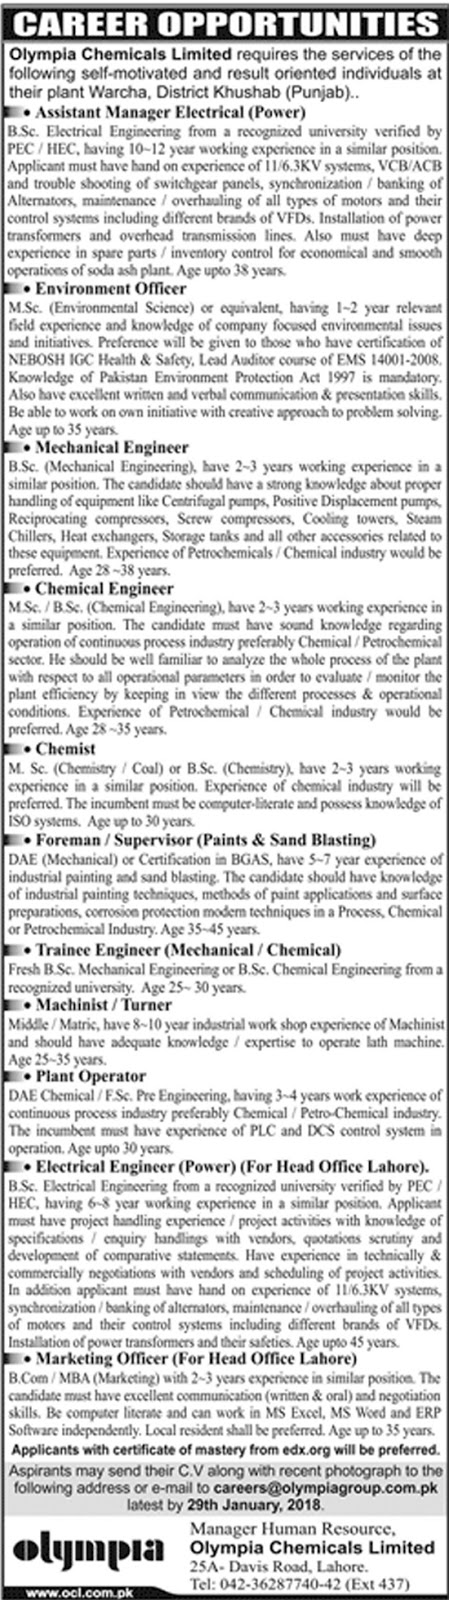 Olympia Chemicals Limited Jobs Jan 2018